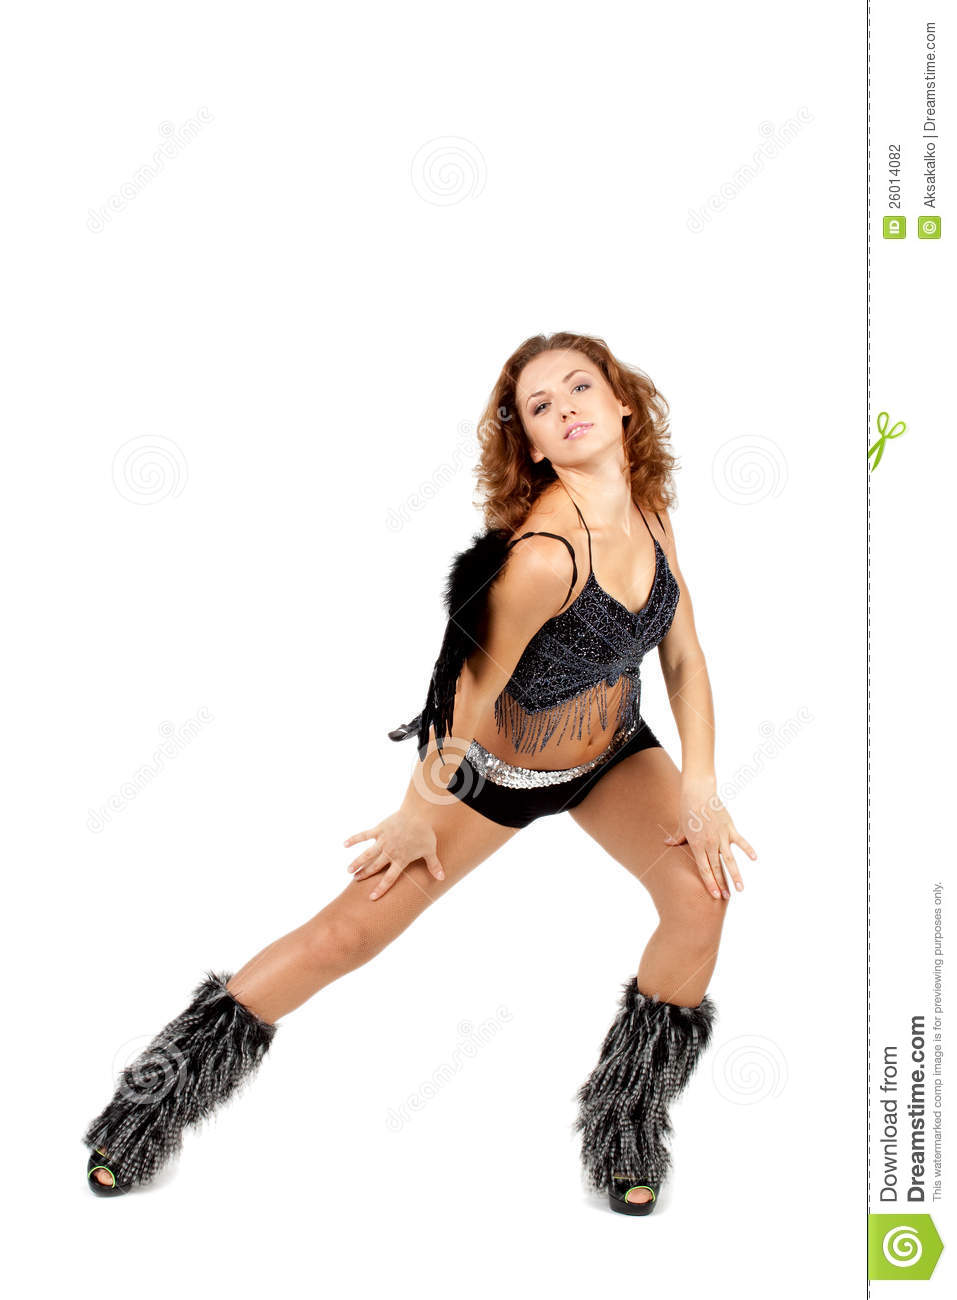 Go-go Dancer Stock Photography - Image: 26014082